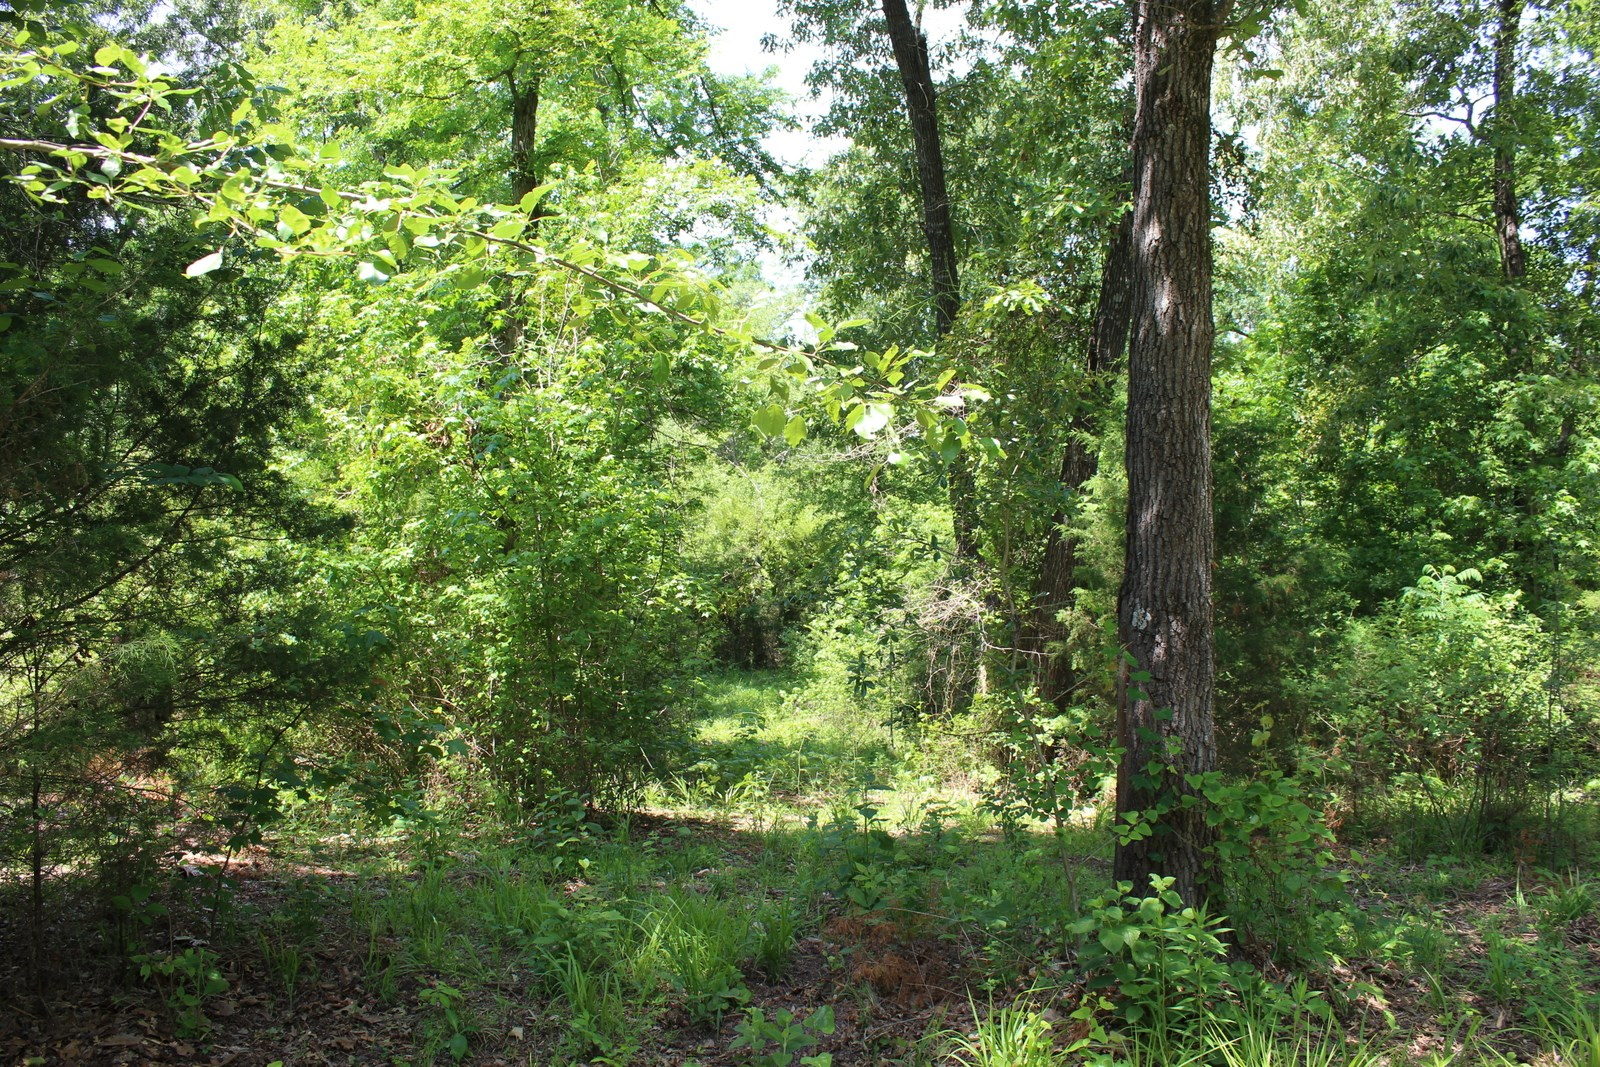 30 PLUS ACRES IN WOOD COUNTY TEXAS FOR SALE